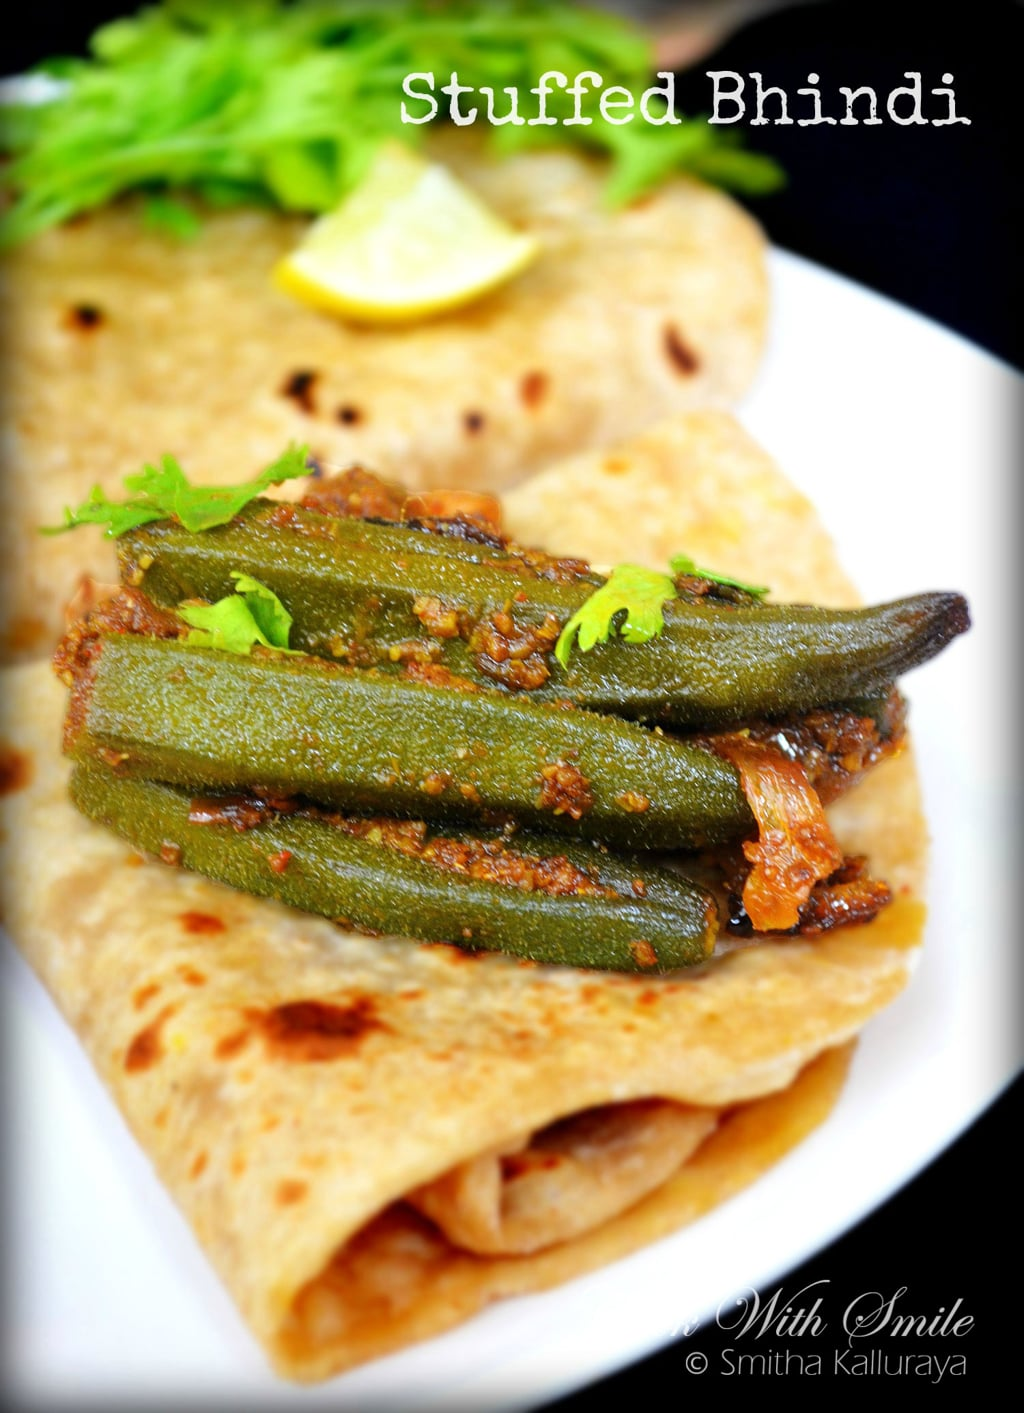 stuffed bhindi